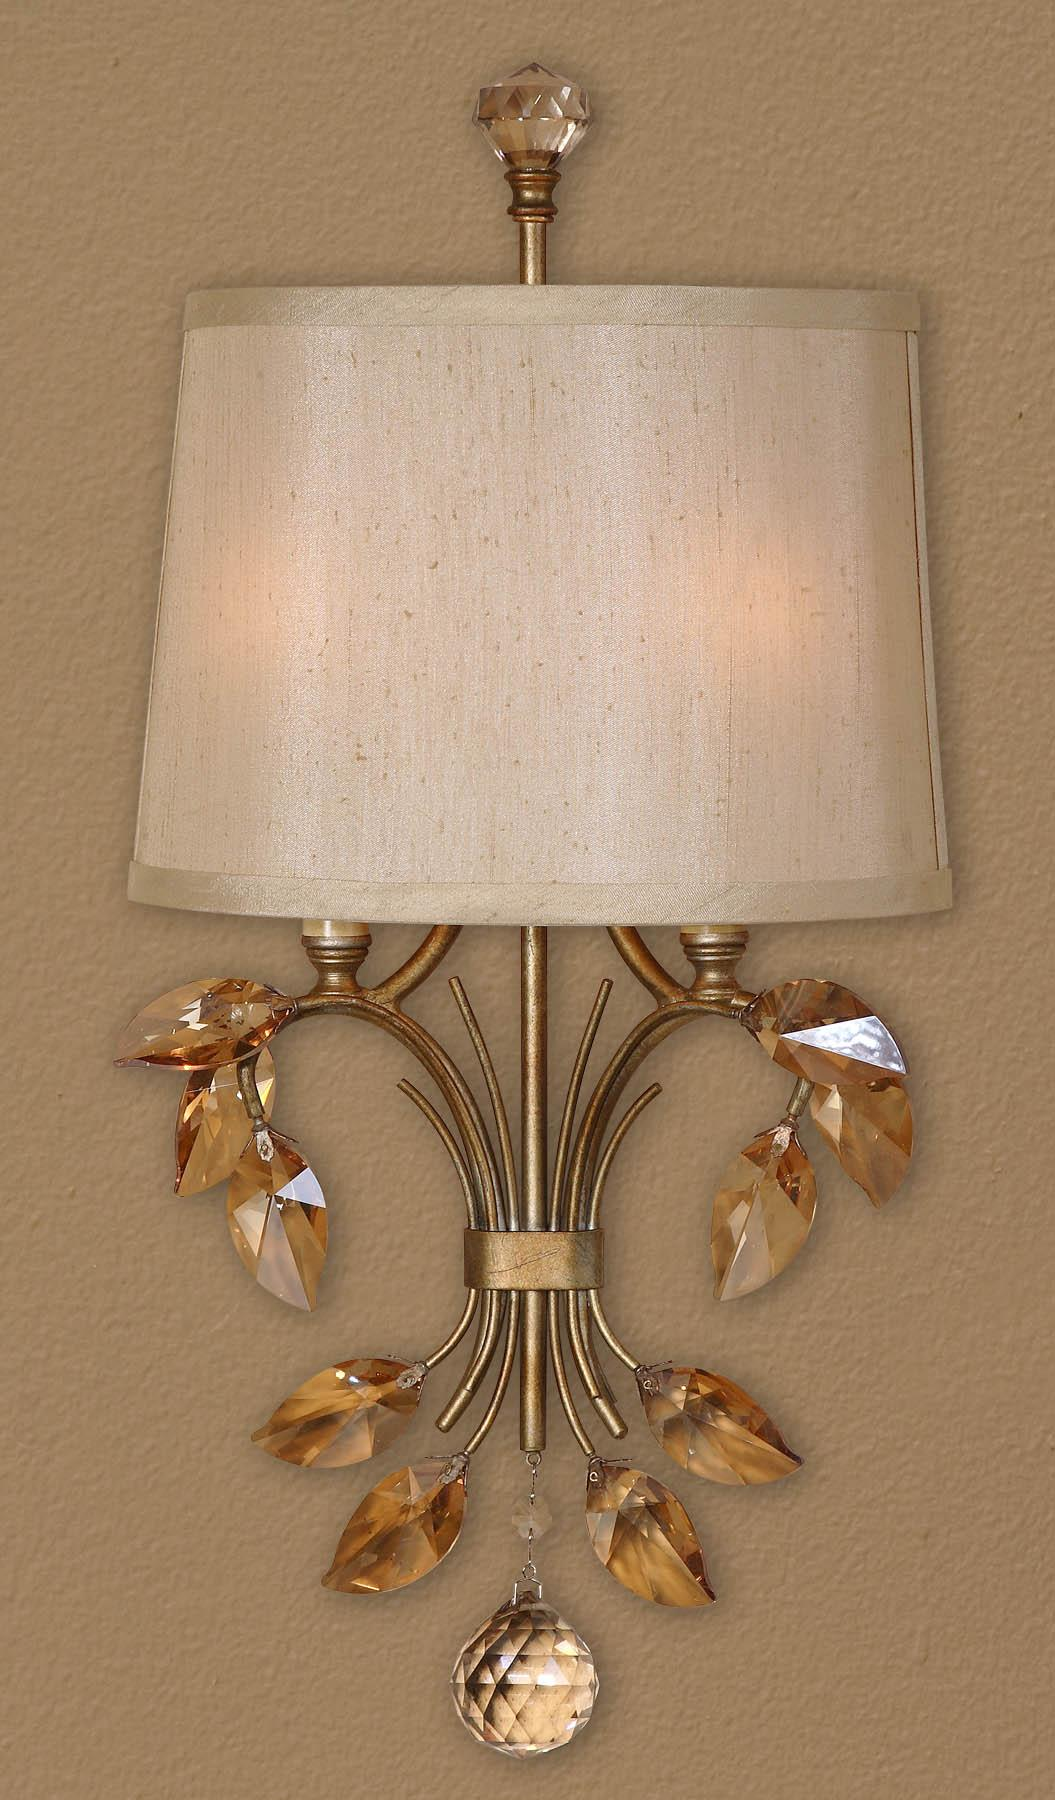 Uttermost Lighting Fixtures Alenya 2 Light Wall Sconce - Item Number: 22487